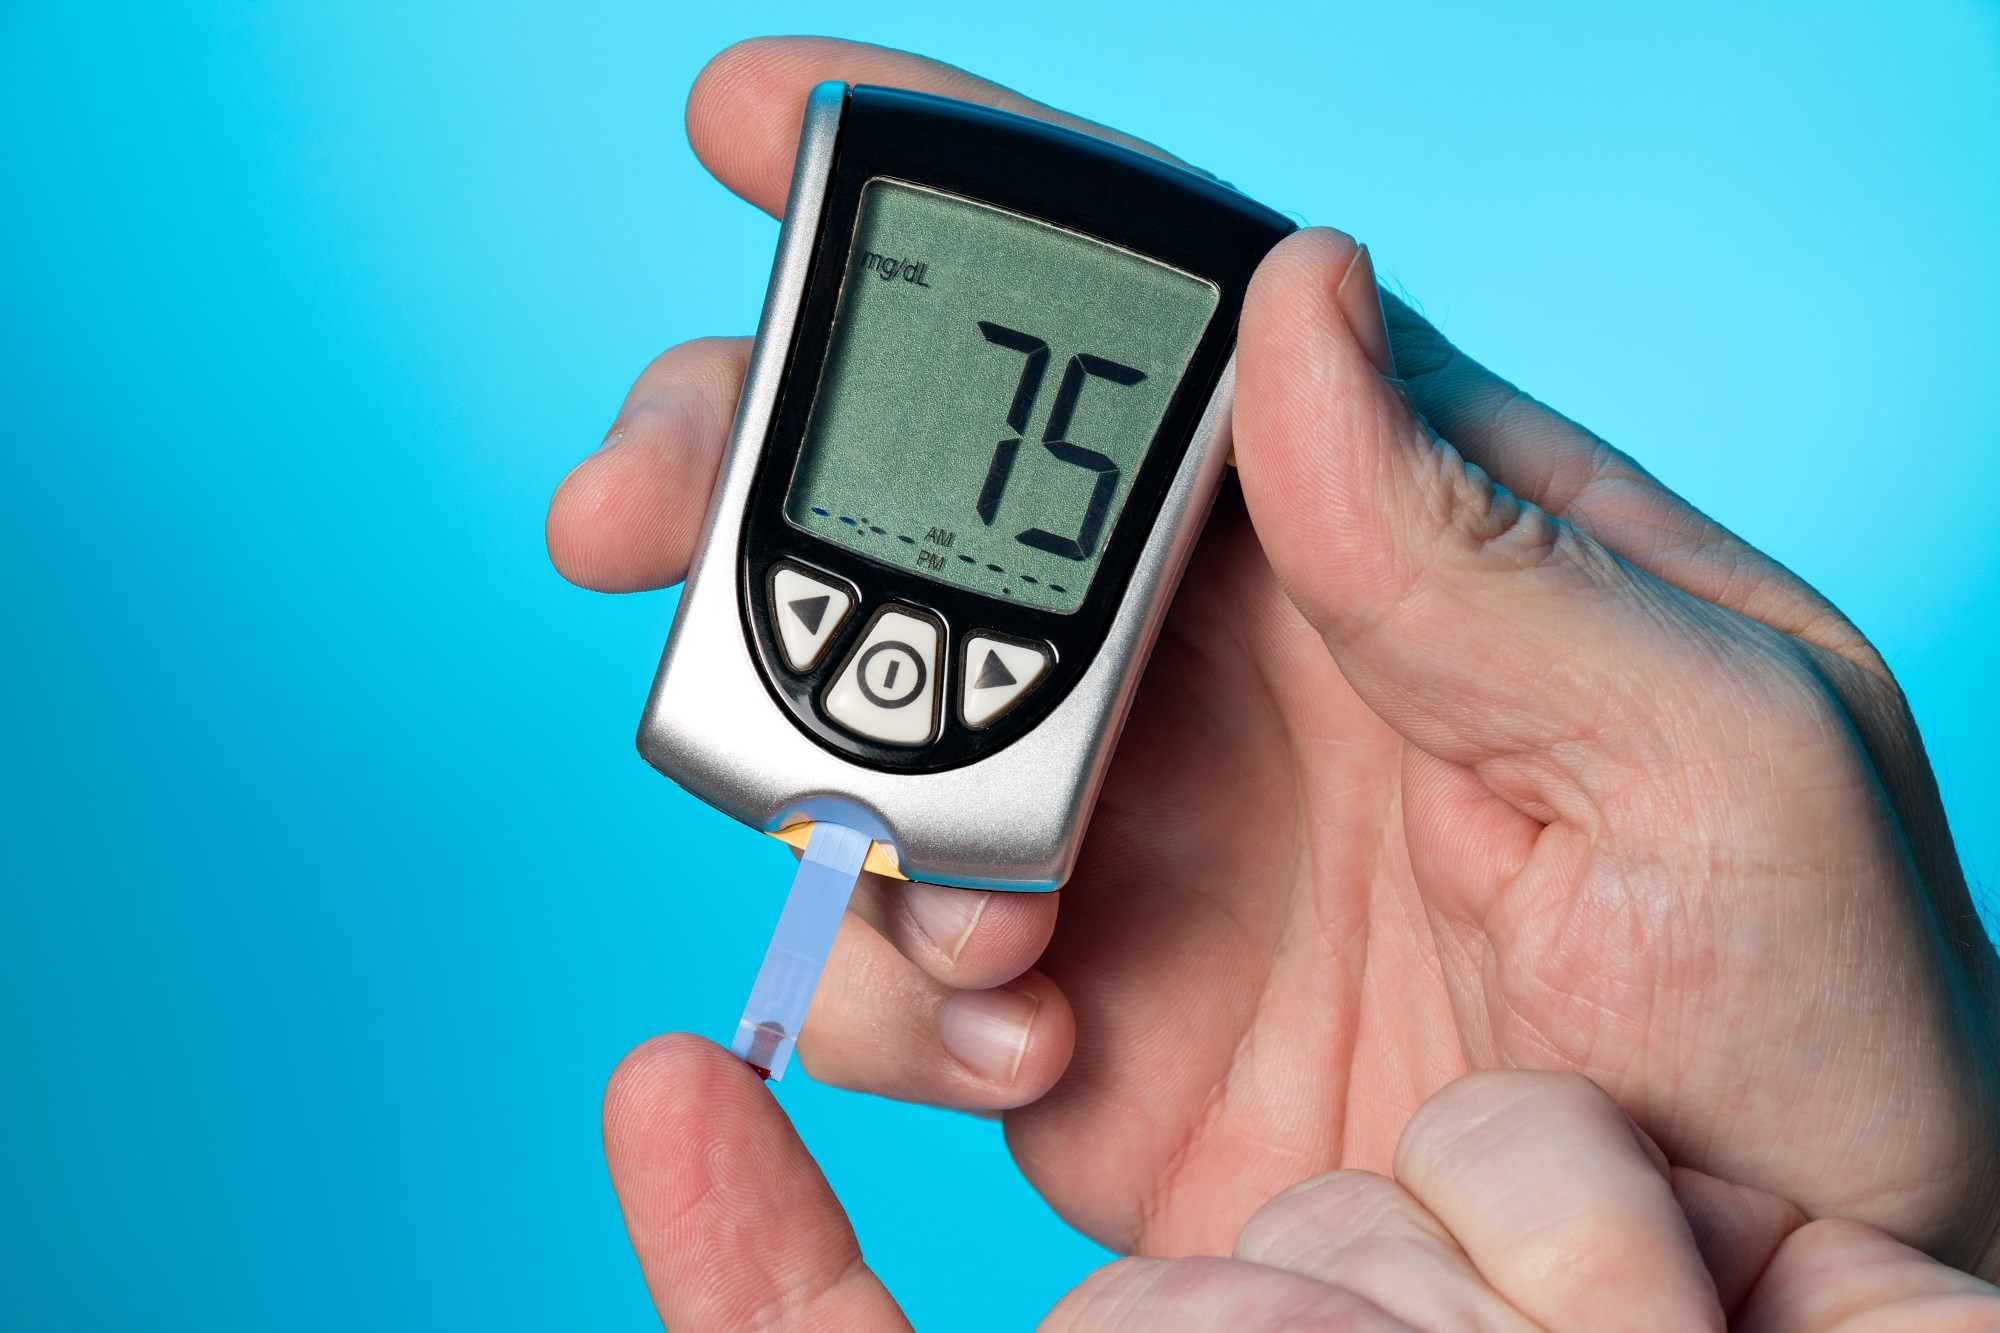 Technosphere Inhaled Insulin Improves Glycemic Control in Type 1 Diabetes